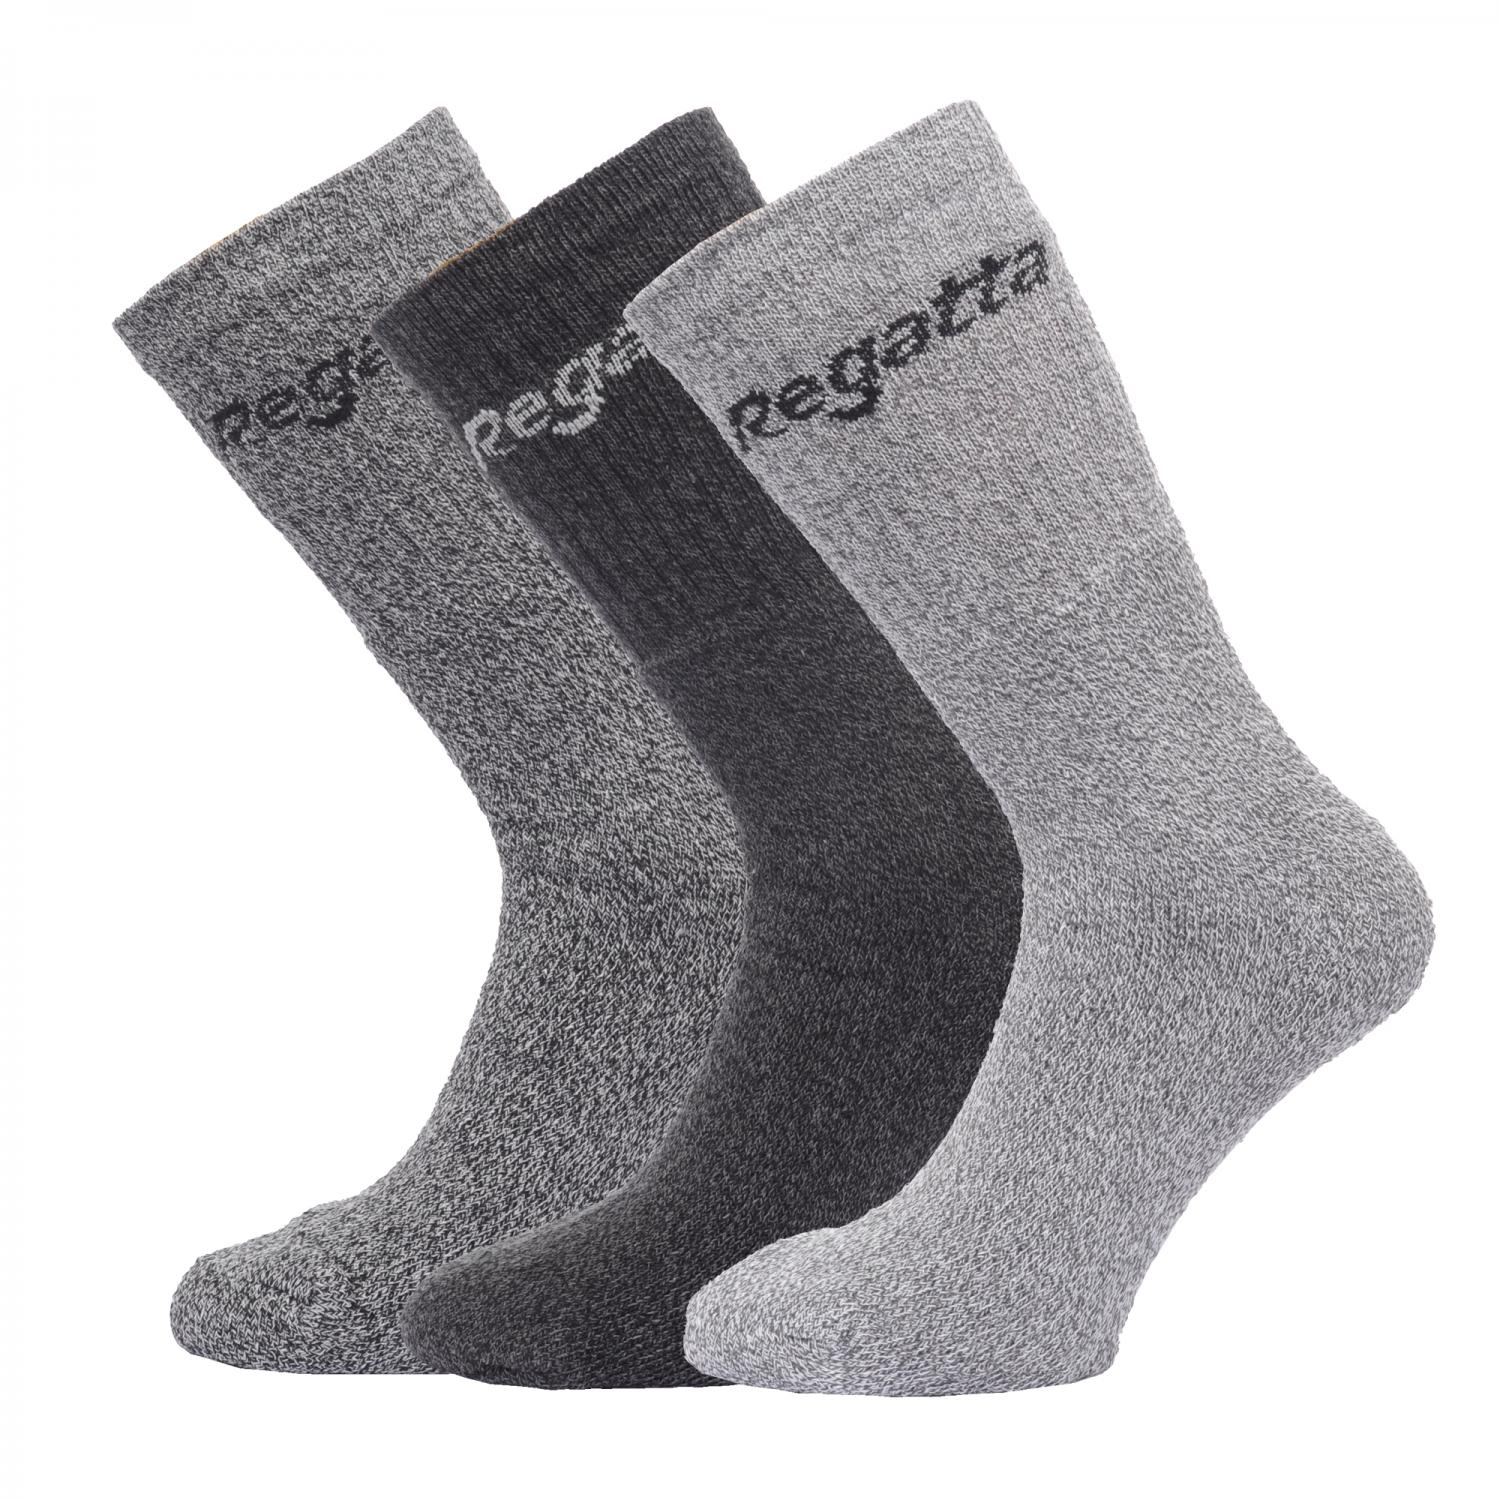 Mens 3 Socks  Box Grey Marl